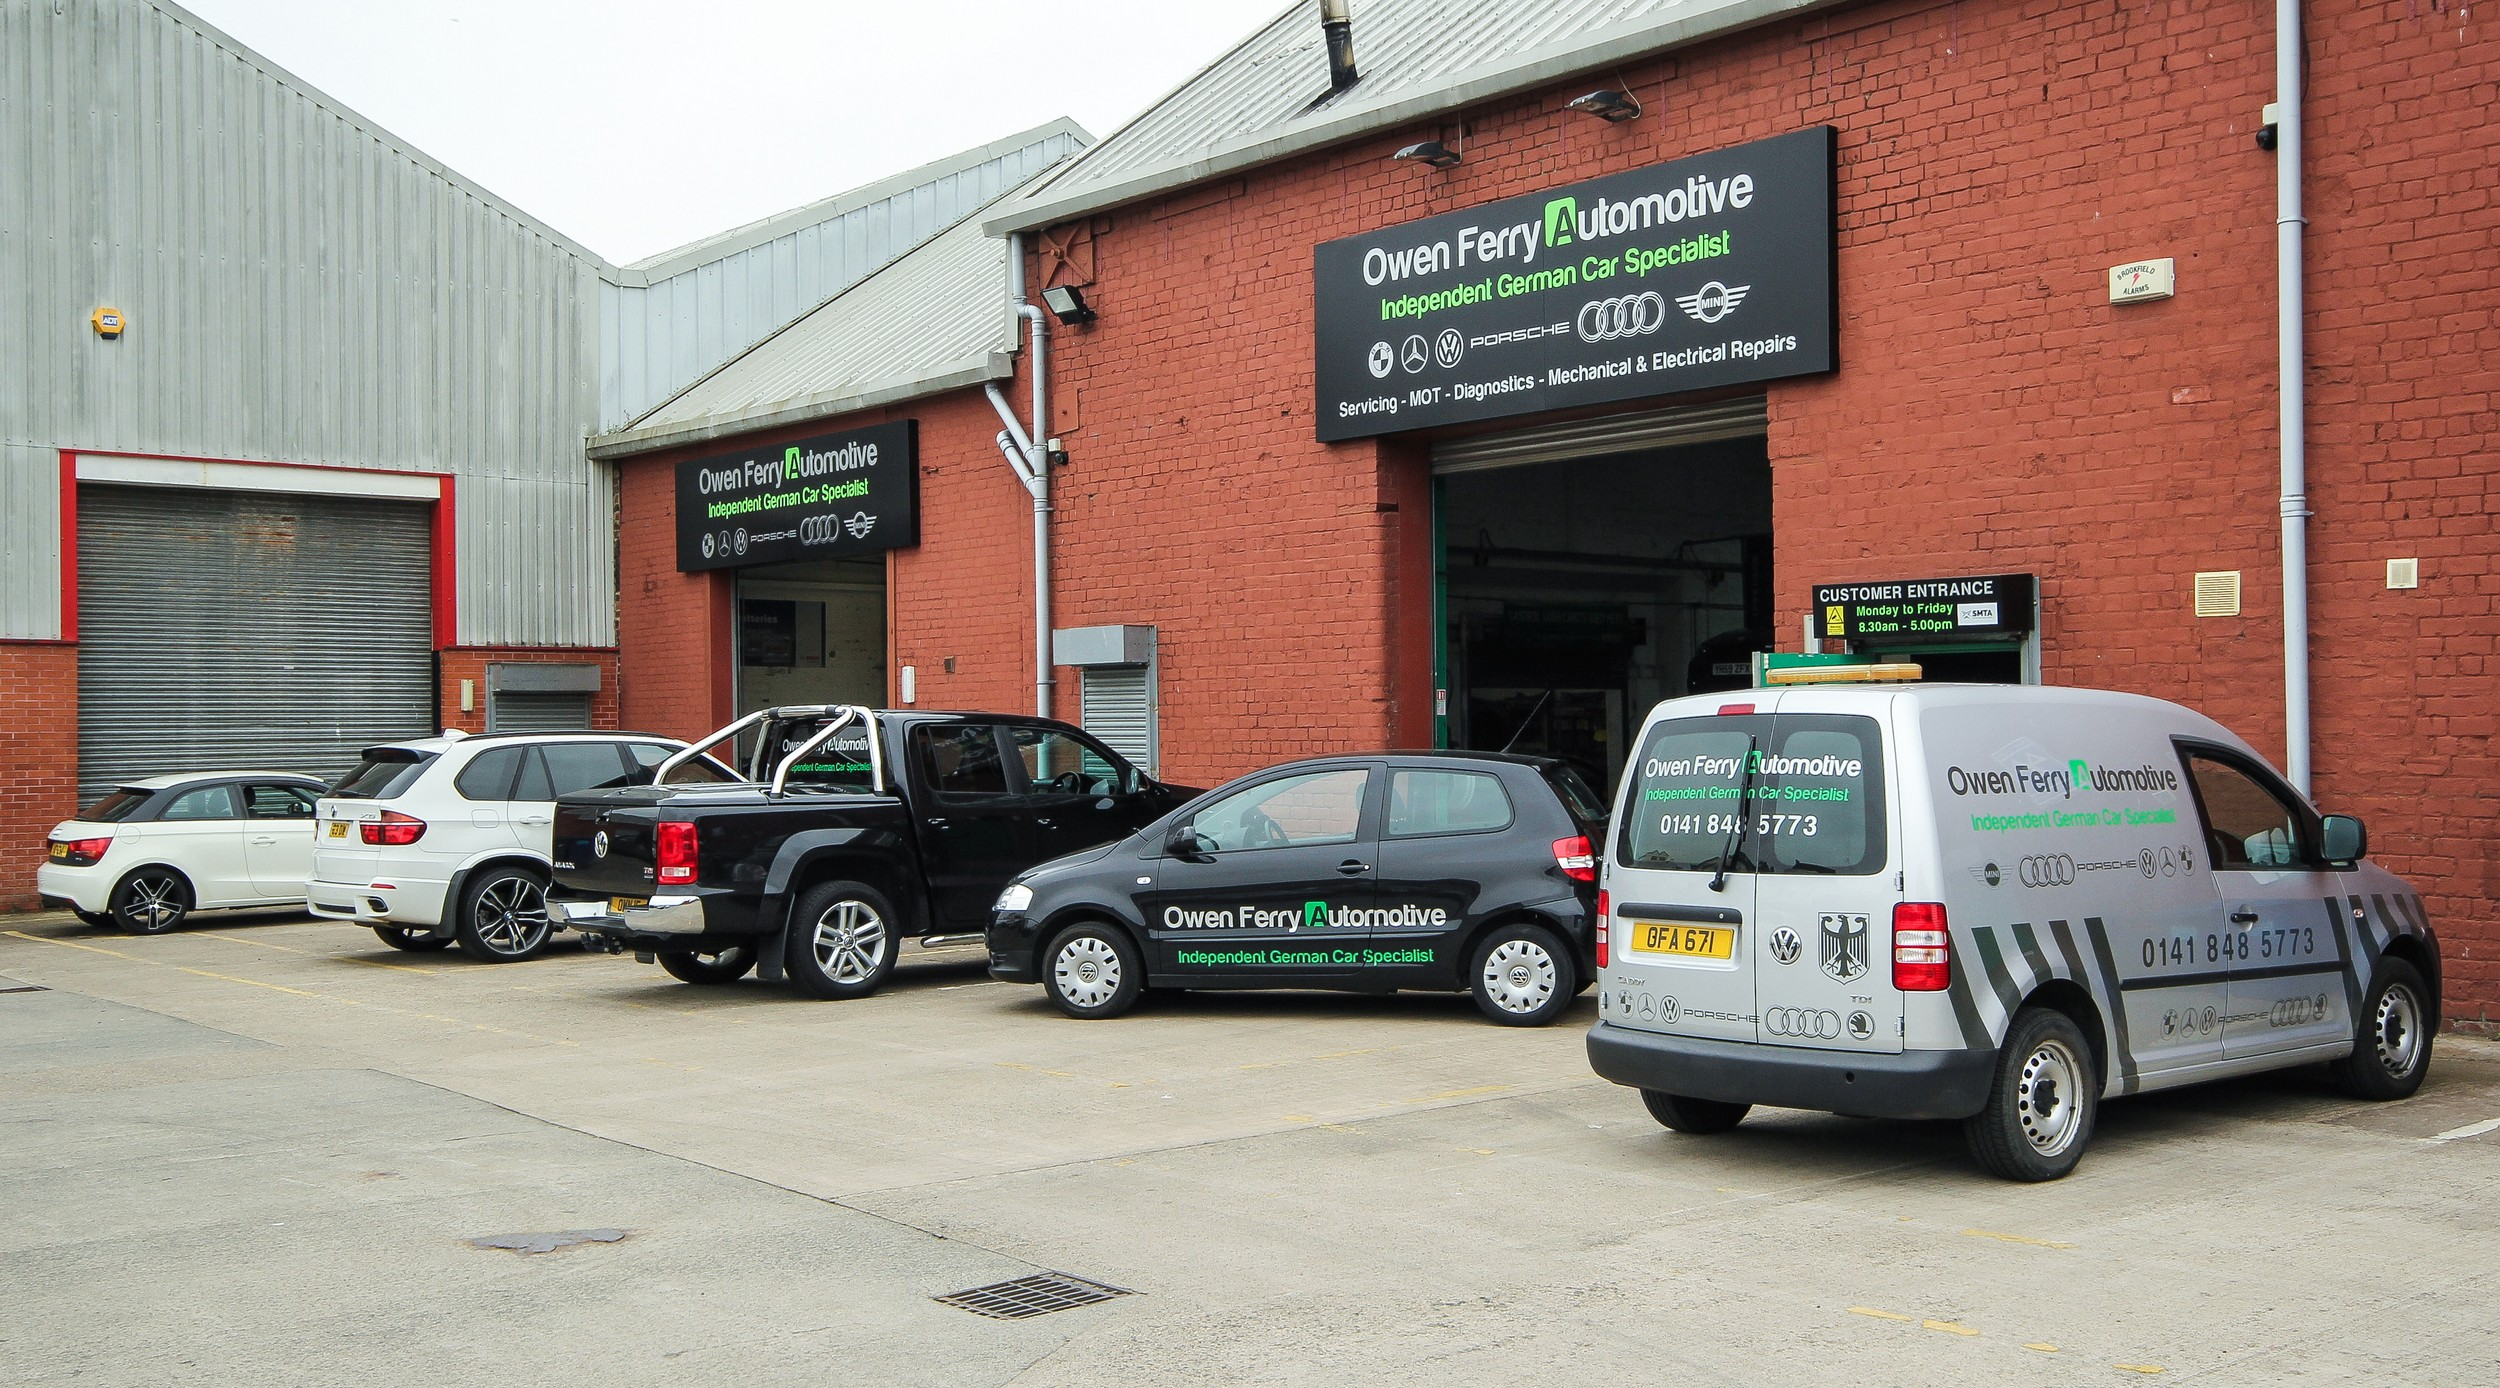 Owen Ferry Auto German Car Specialists